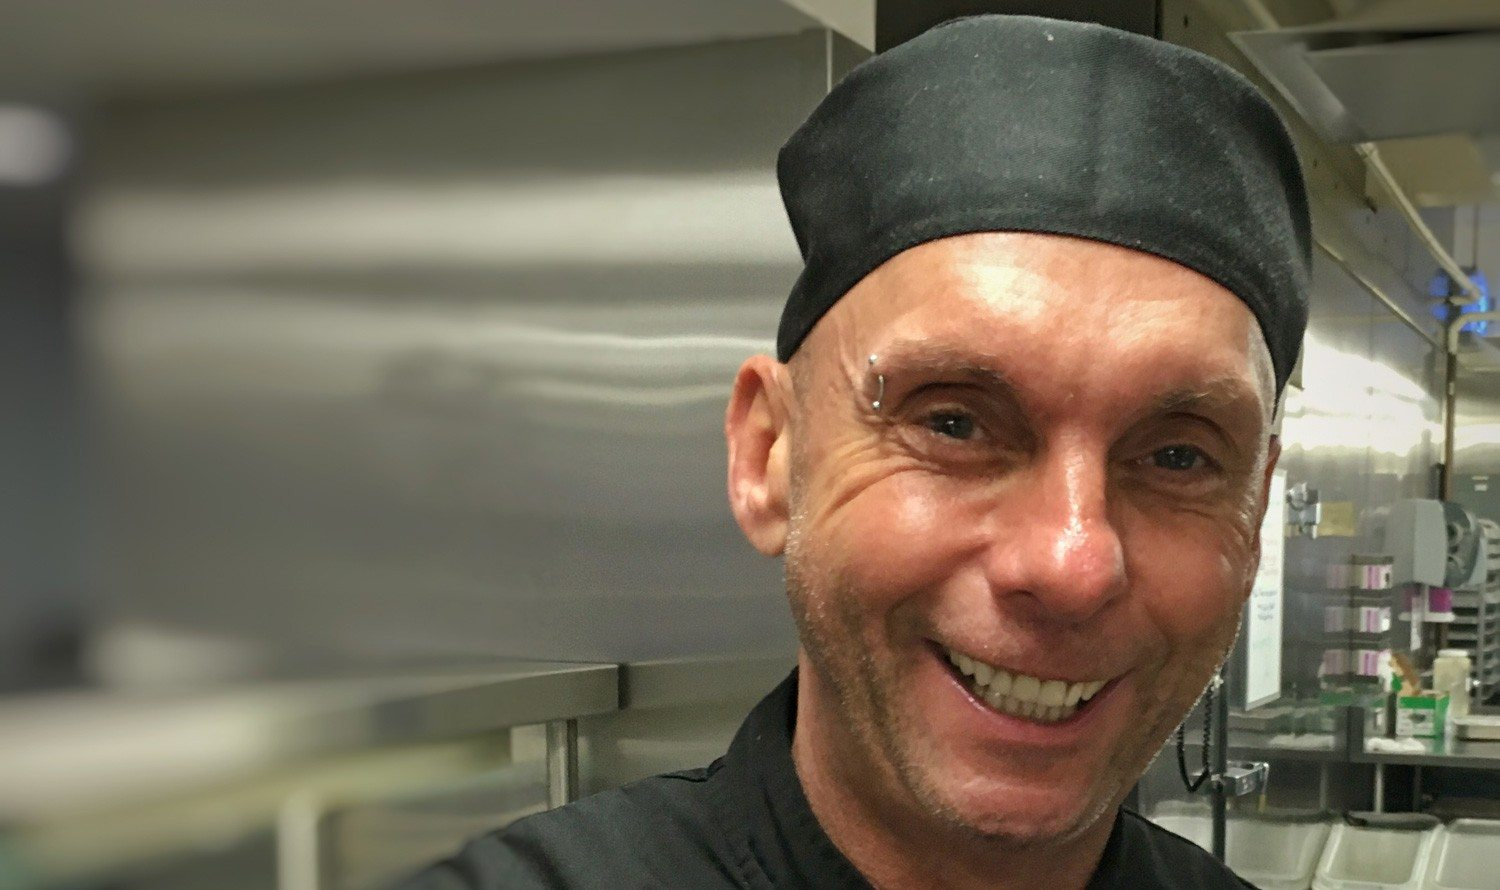 City's busiest chef prepares for Coldest Night of the Year